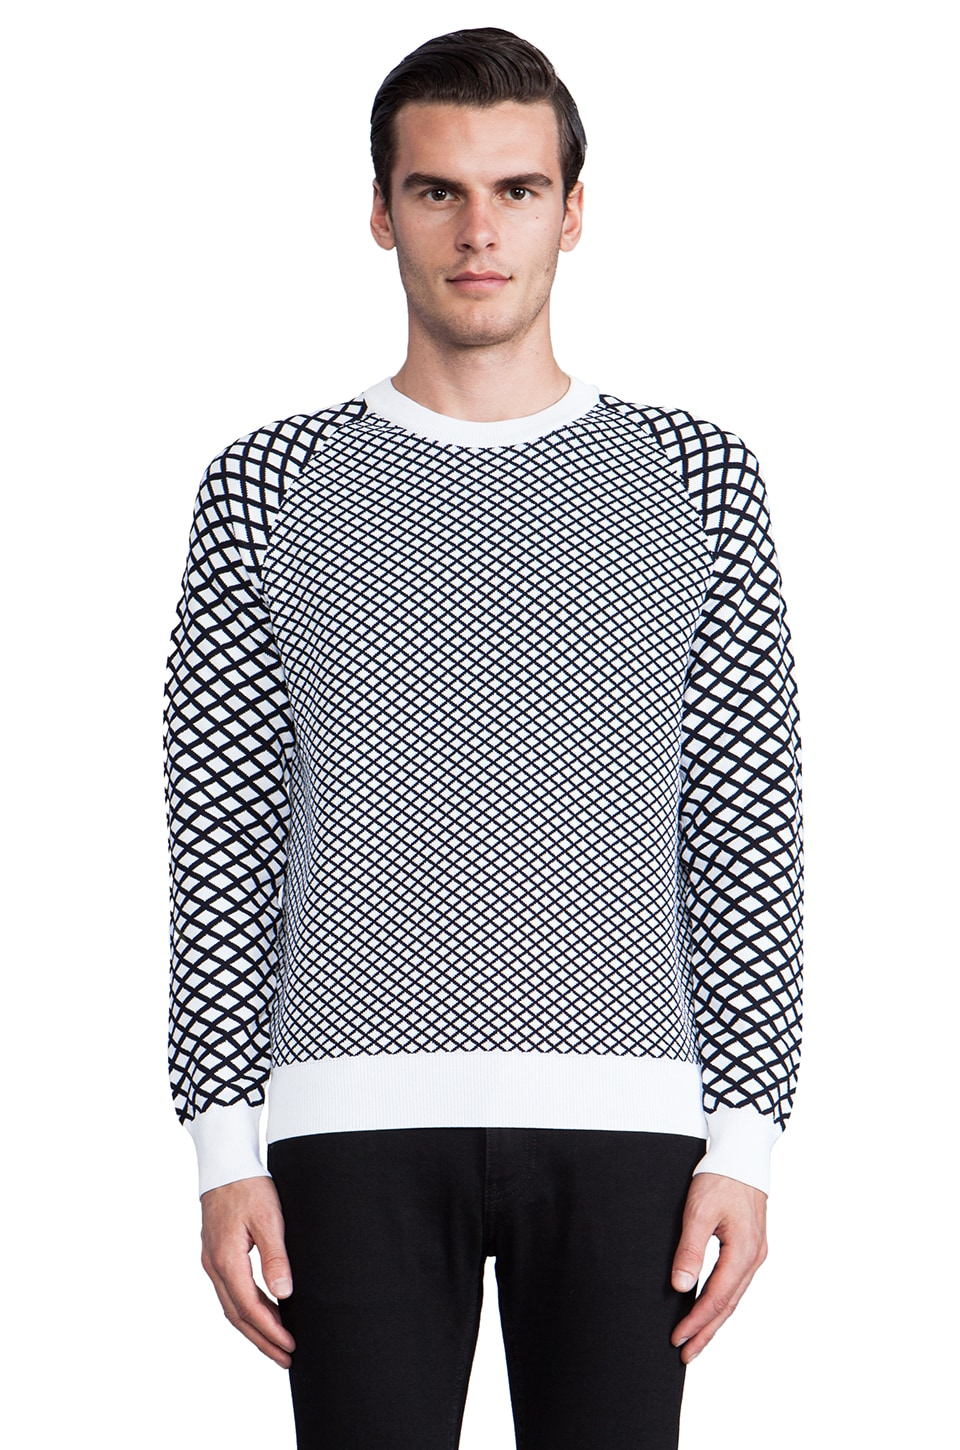 Theory 38 Rorin Sweater in Black/White